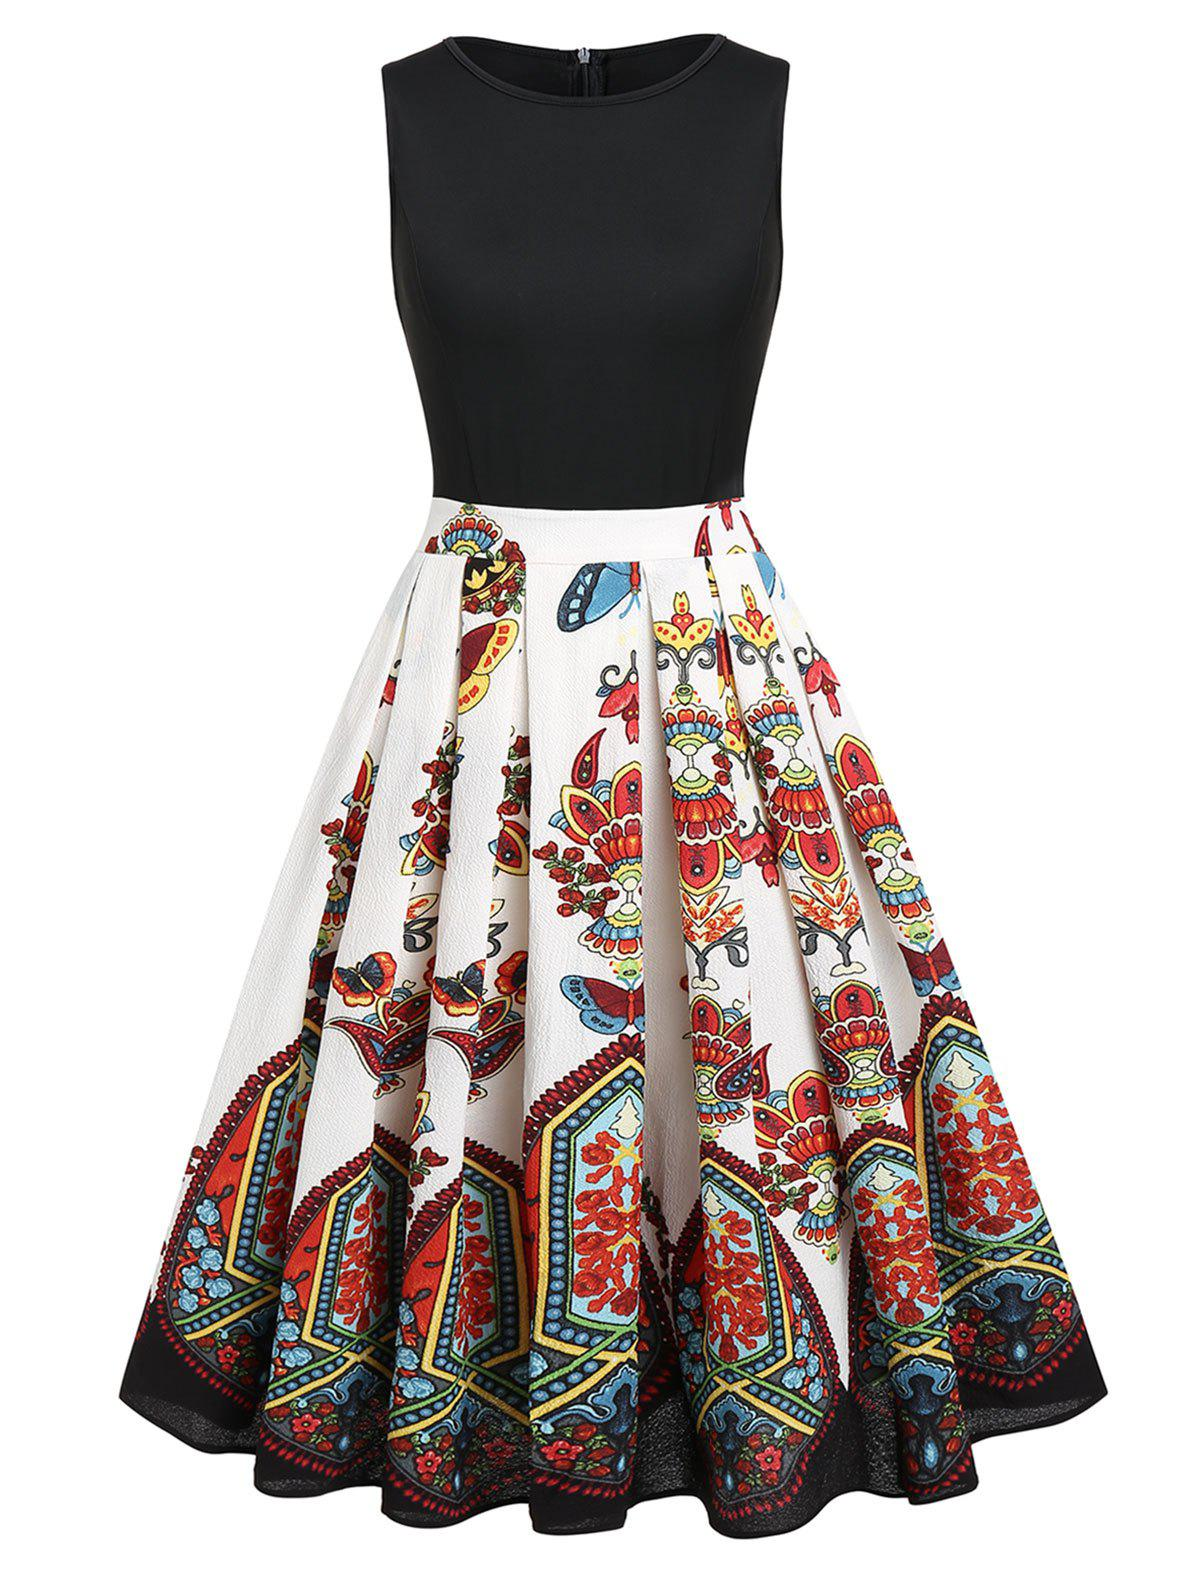 New Tribal Print Sleeveless A-line Vintage Dress